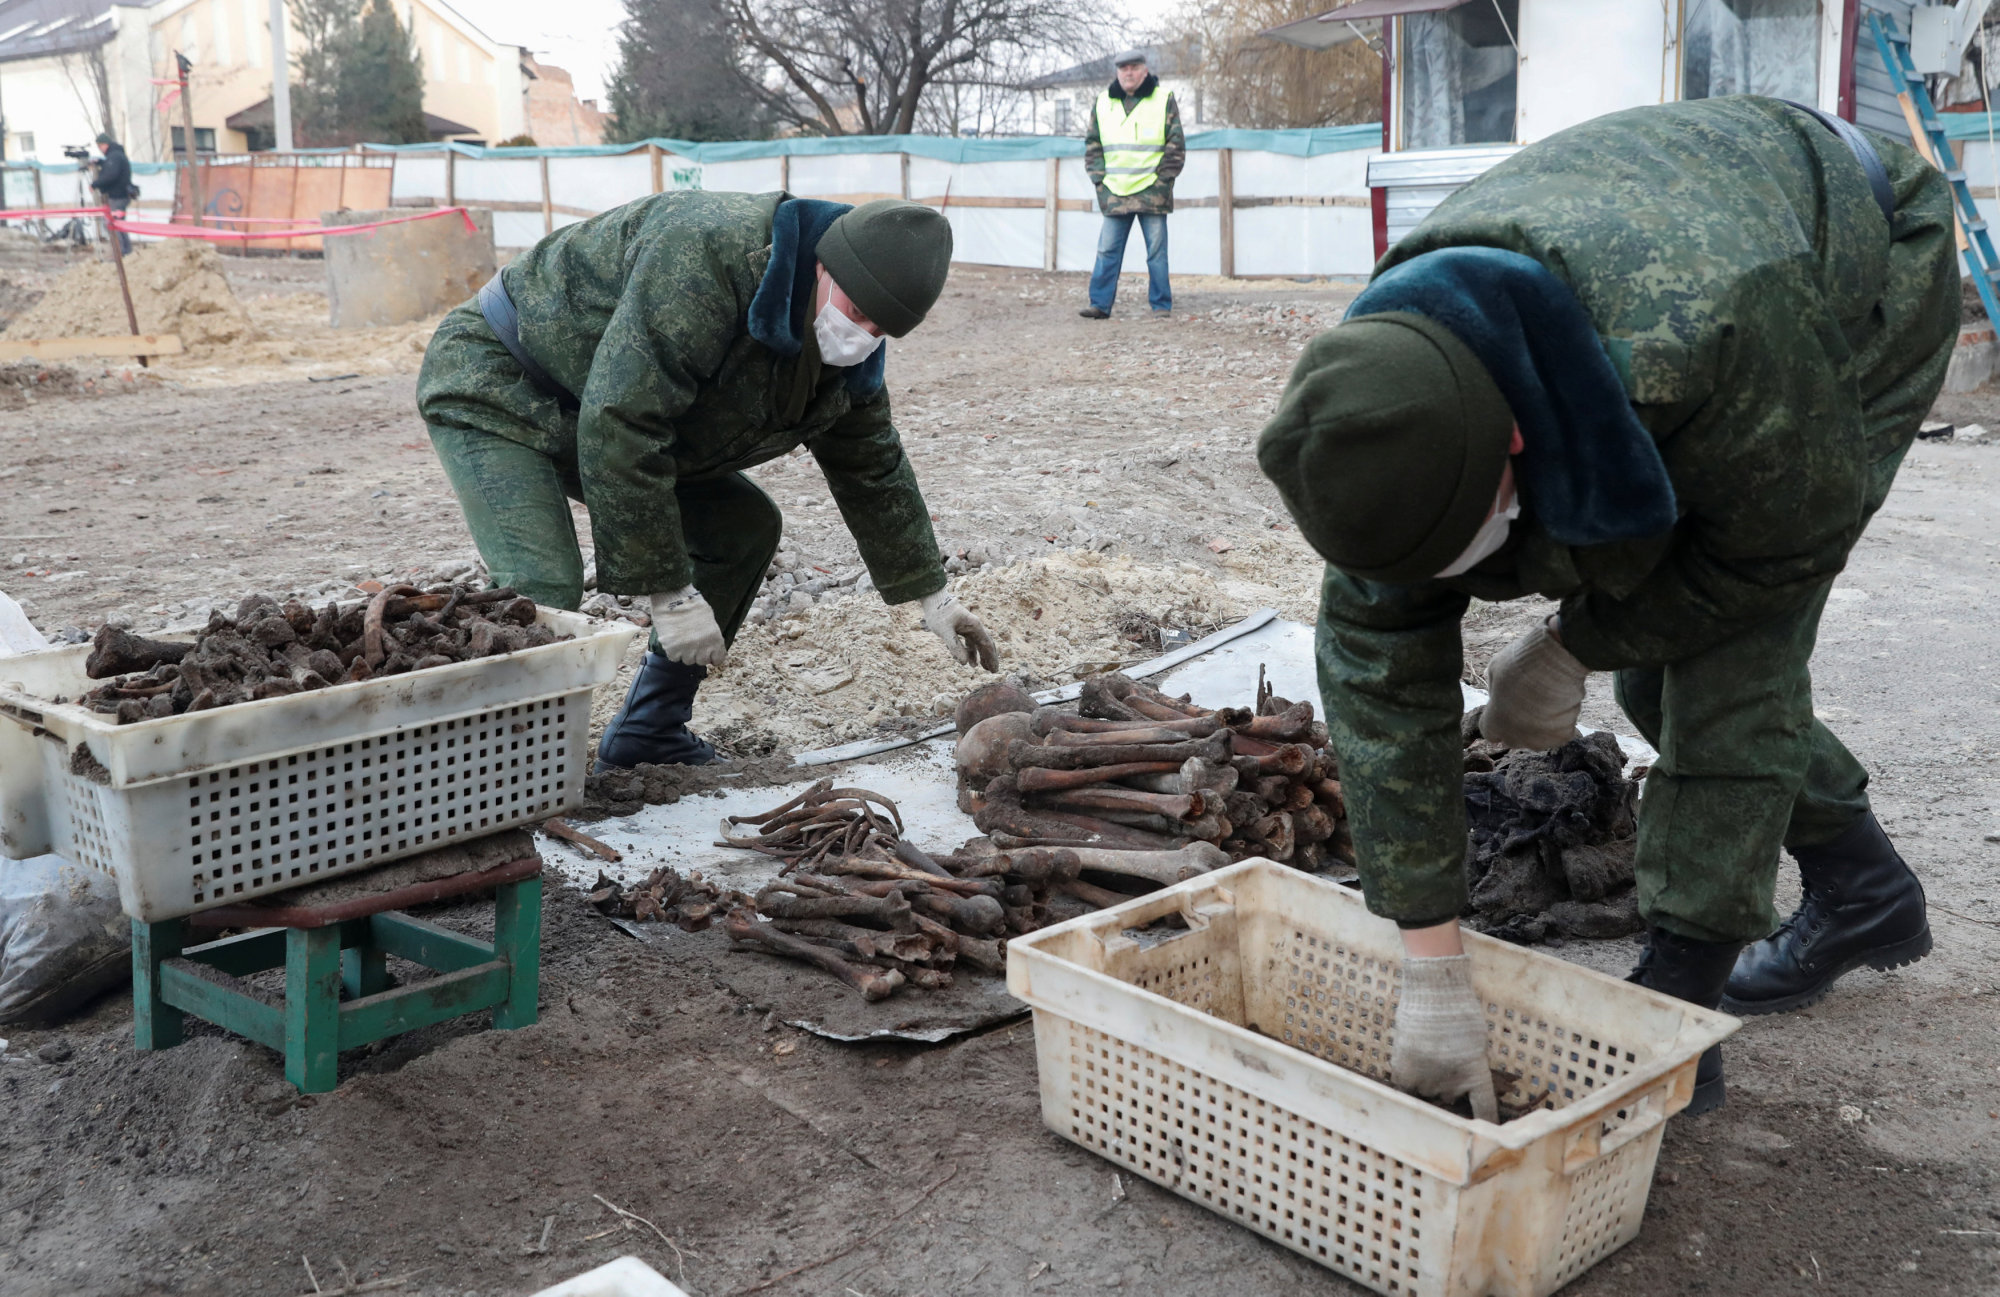 Soldiers from a special 'search battalion' of the Belarus Defense Ministry collect the remains of about 730 prisoners of a former Jewish ghetto, discovered in a mass grave at a construction site in the center of Brest, Belarus, Tuesday.   REUTERS